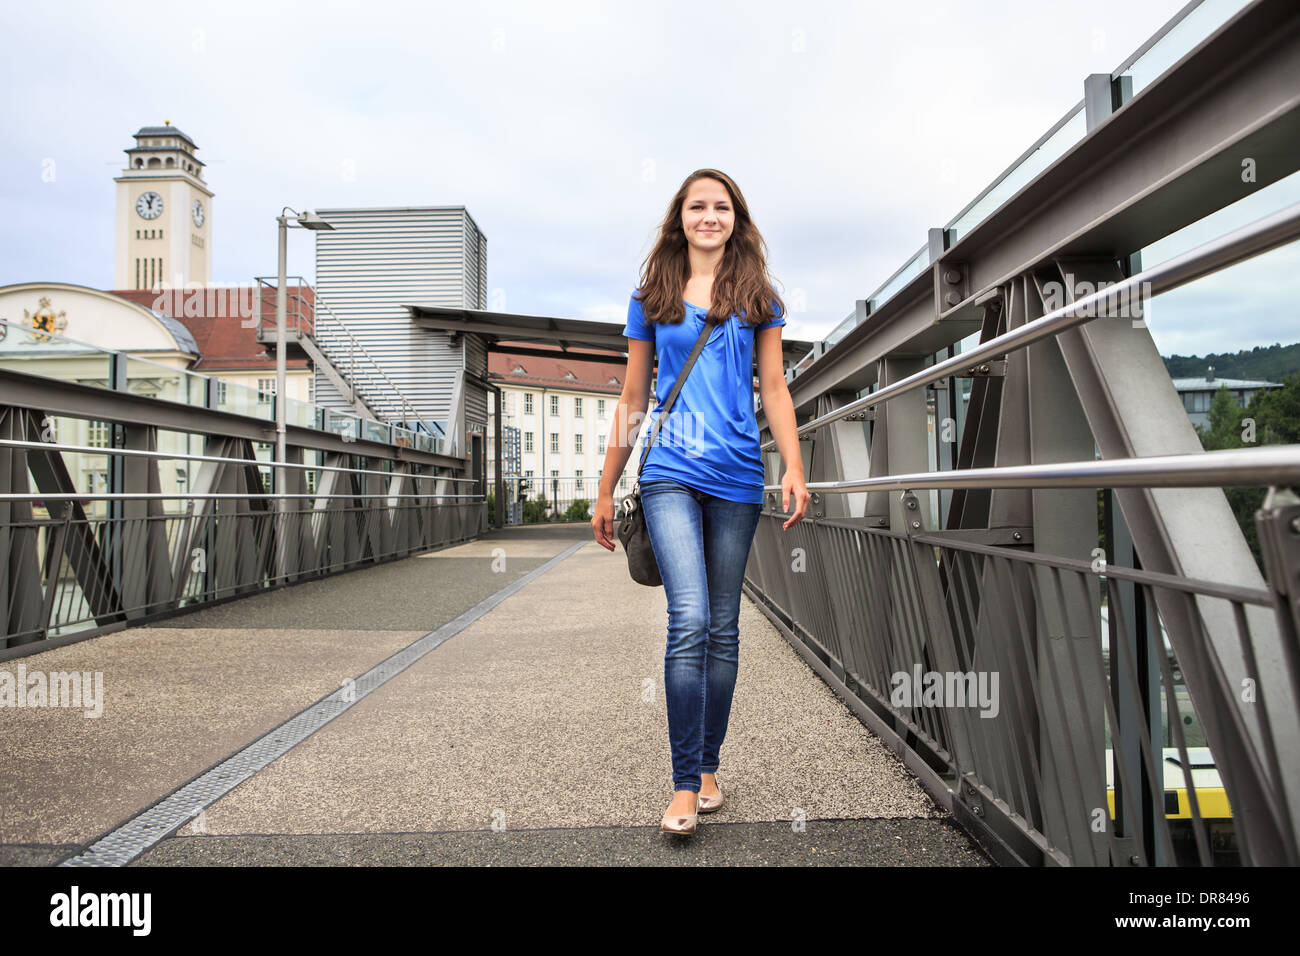 Portait of a teenage girl in the town. Sonneberg, Thuringia, Germany - Stock